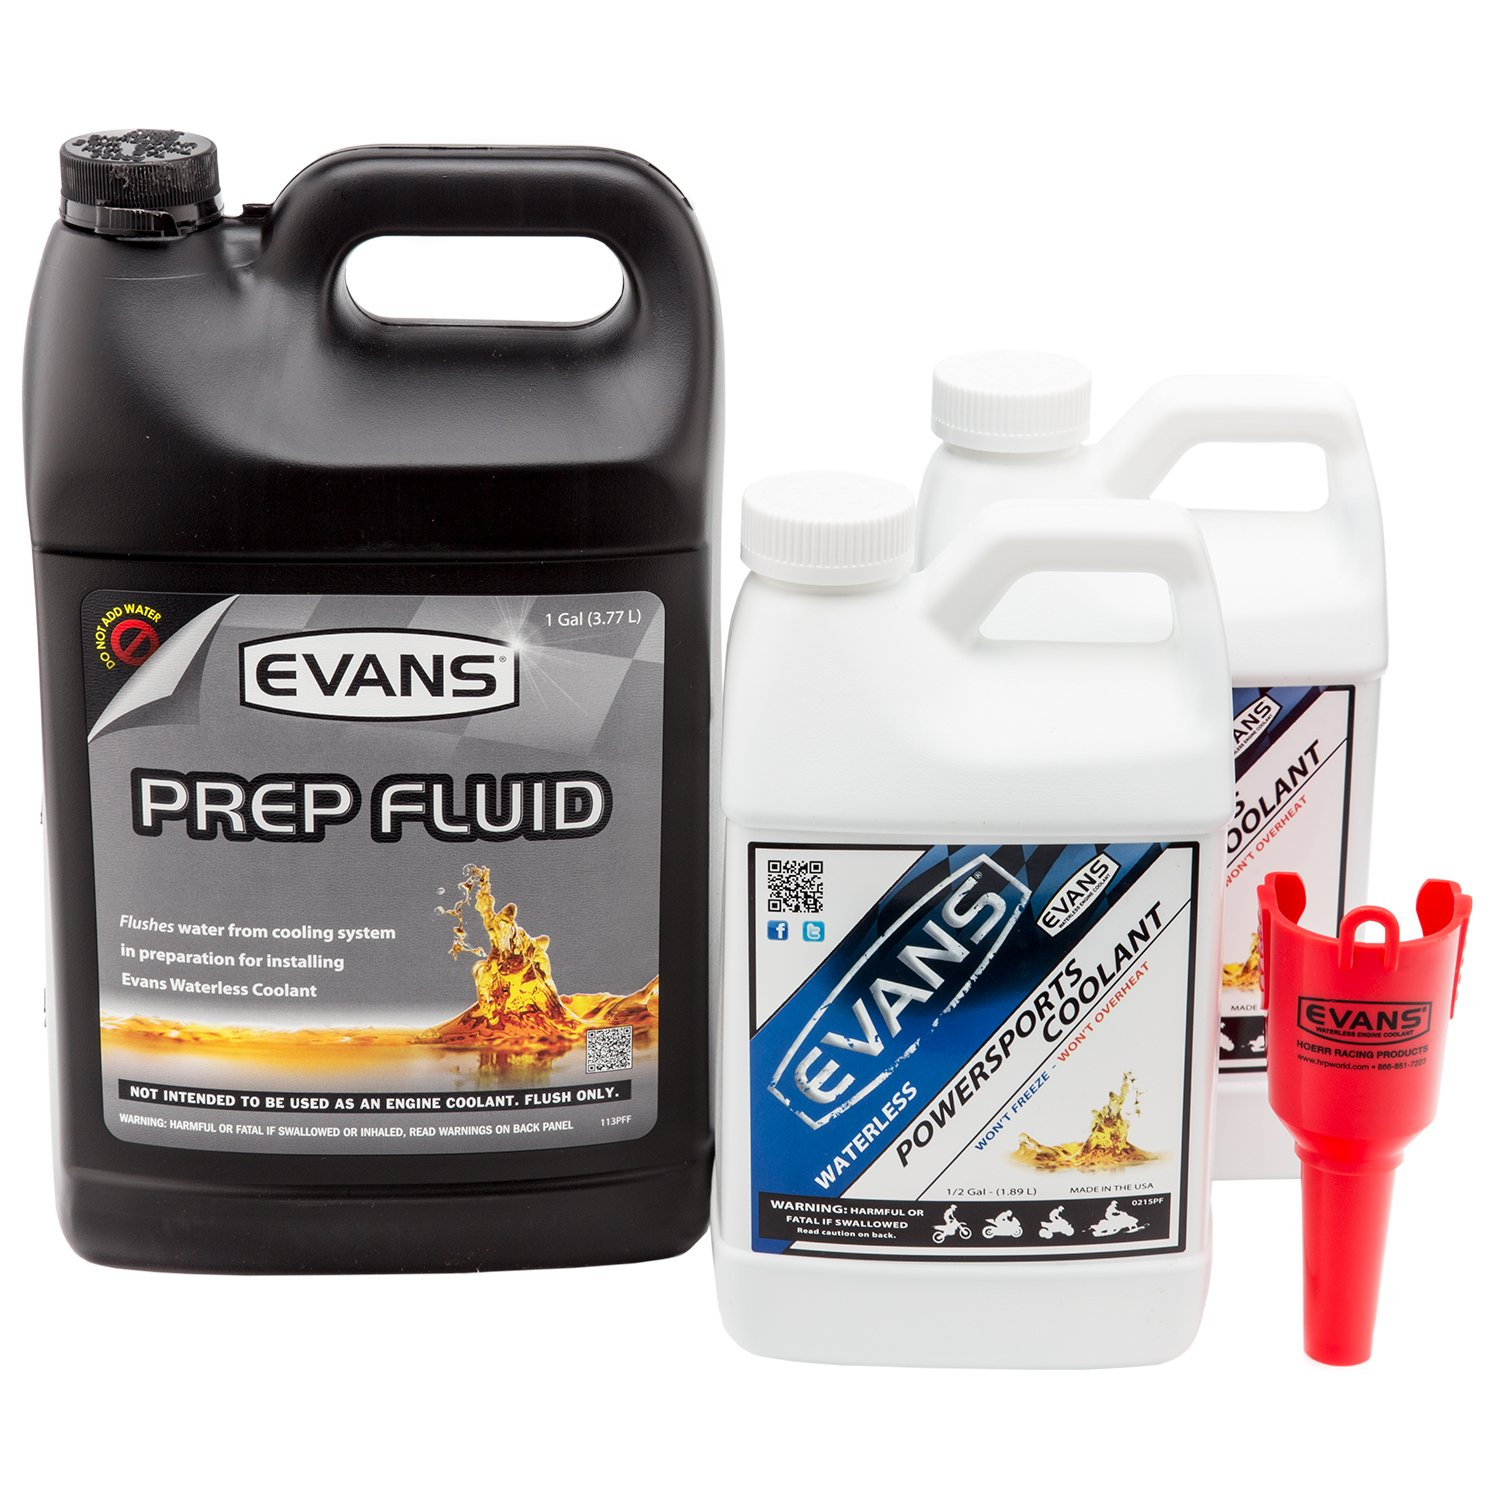 Evans Coolant EC72064-2 EC41001 Powersports Waterless Coolant and Prep Fluid Combo Pack, 2 Gallon with Funnel by EVANS